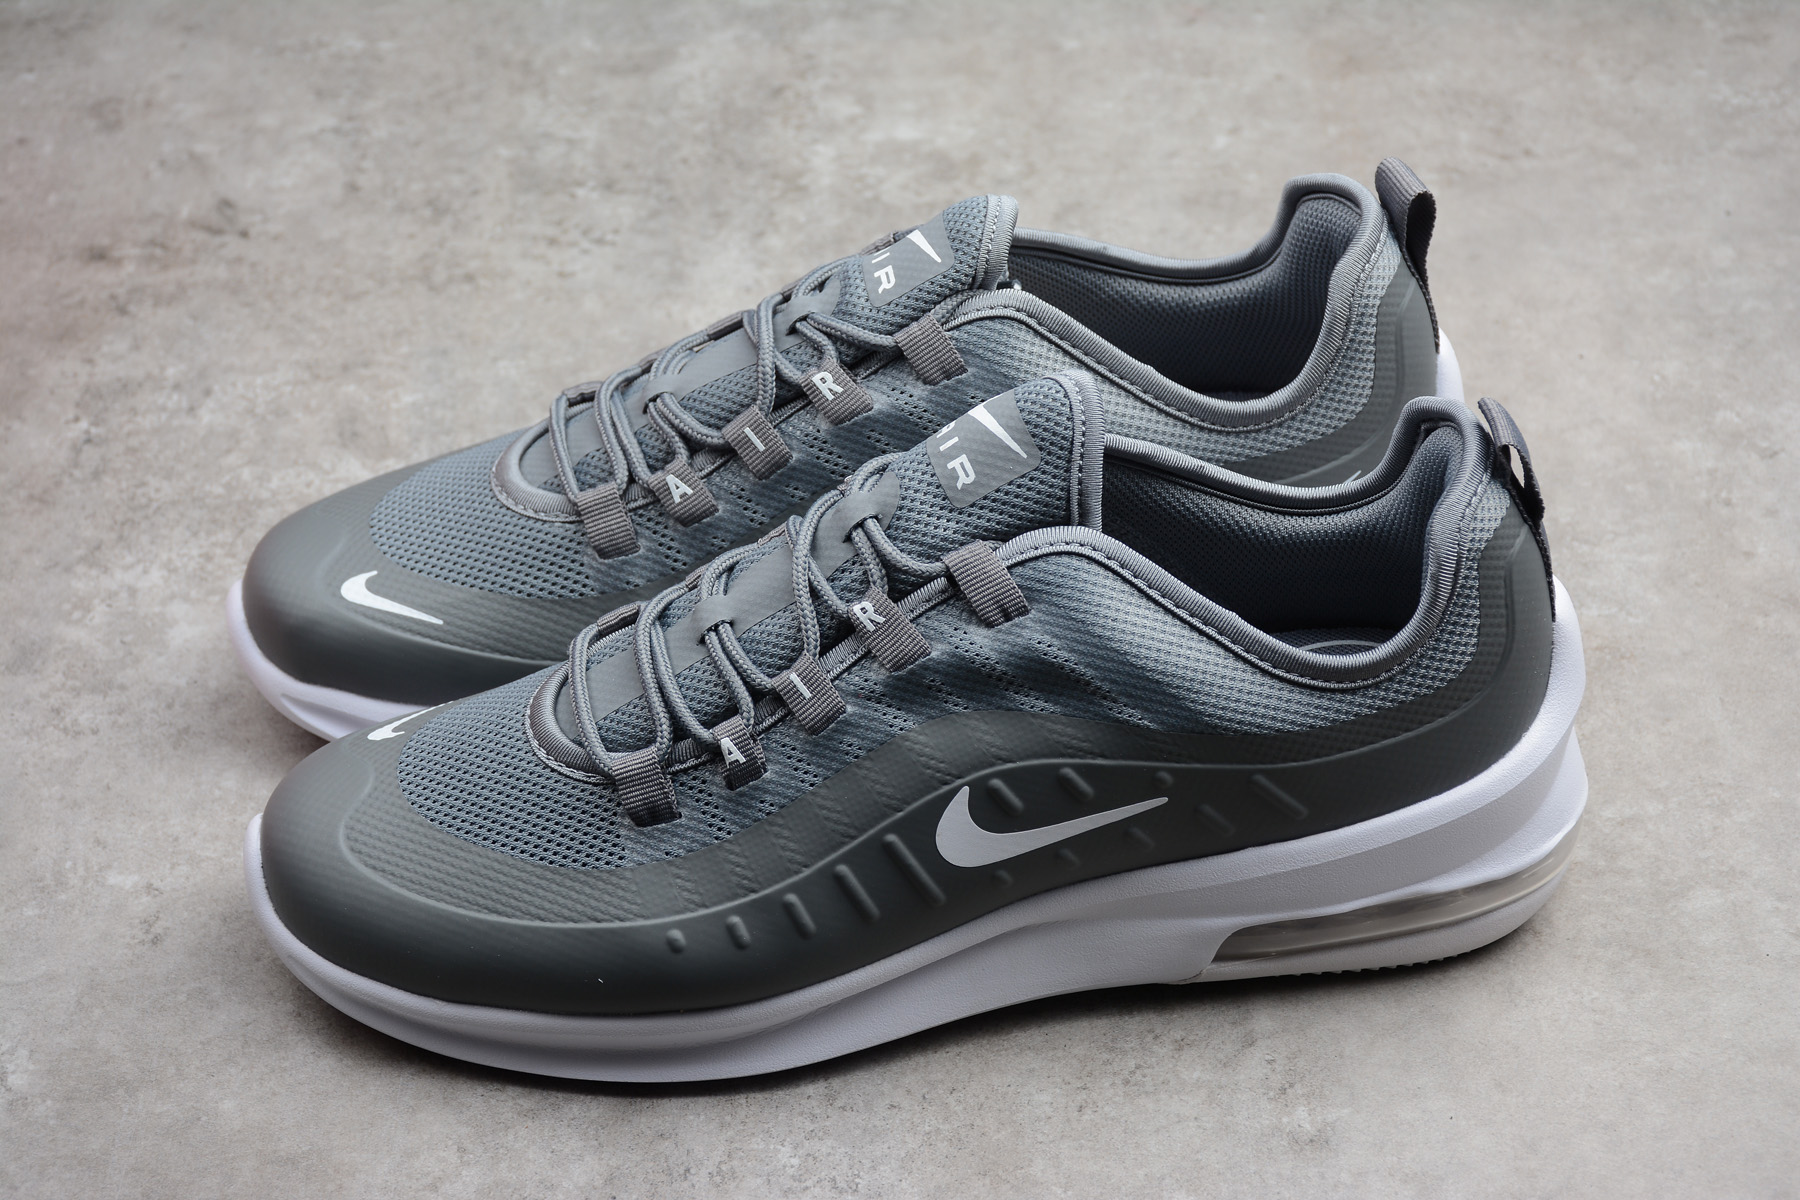 Nike Air Max Axis Cool Grey\/White Running Shoes AA2146-002